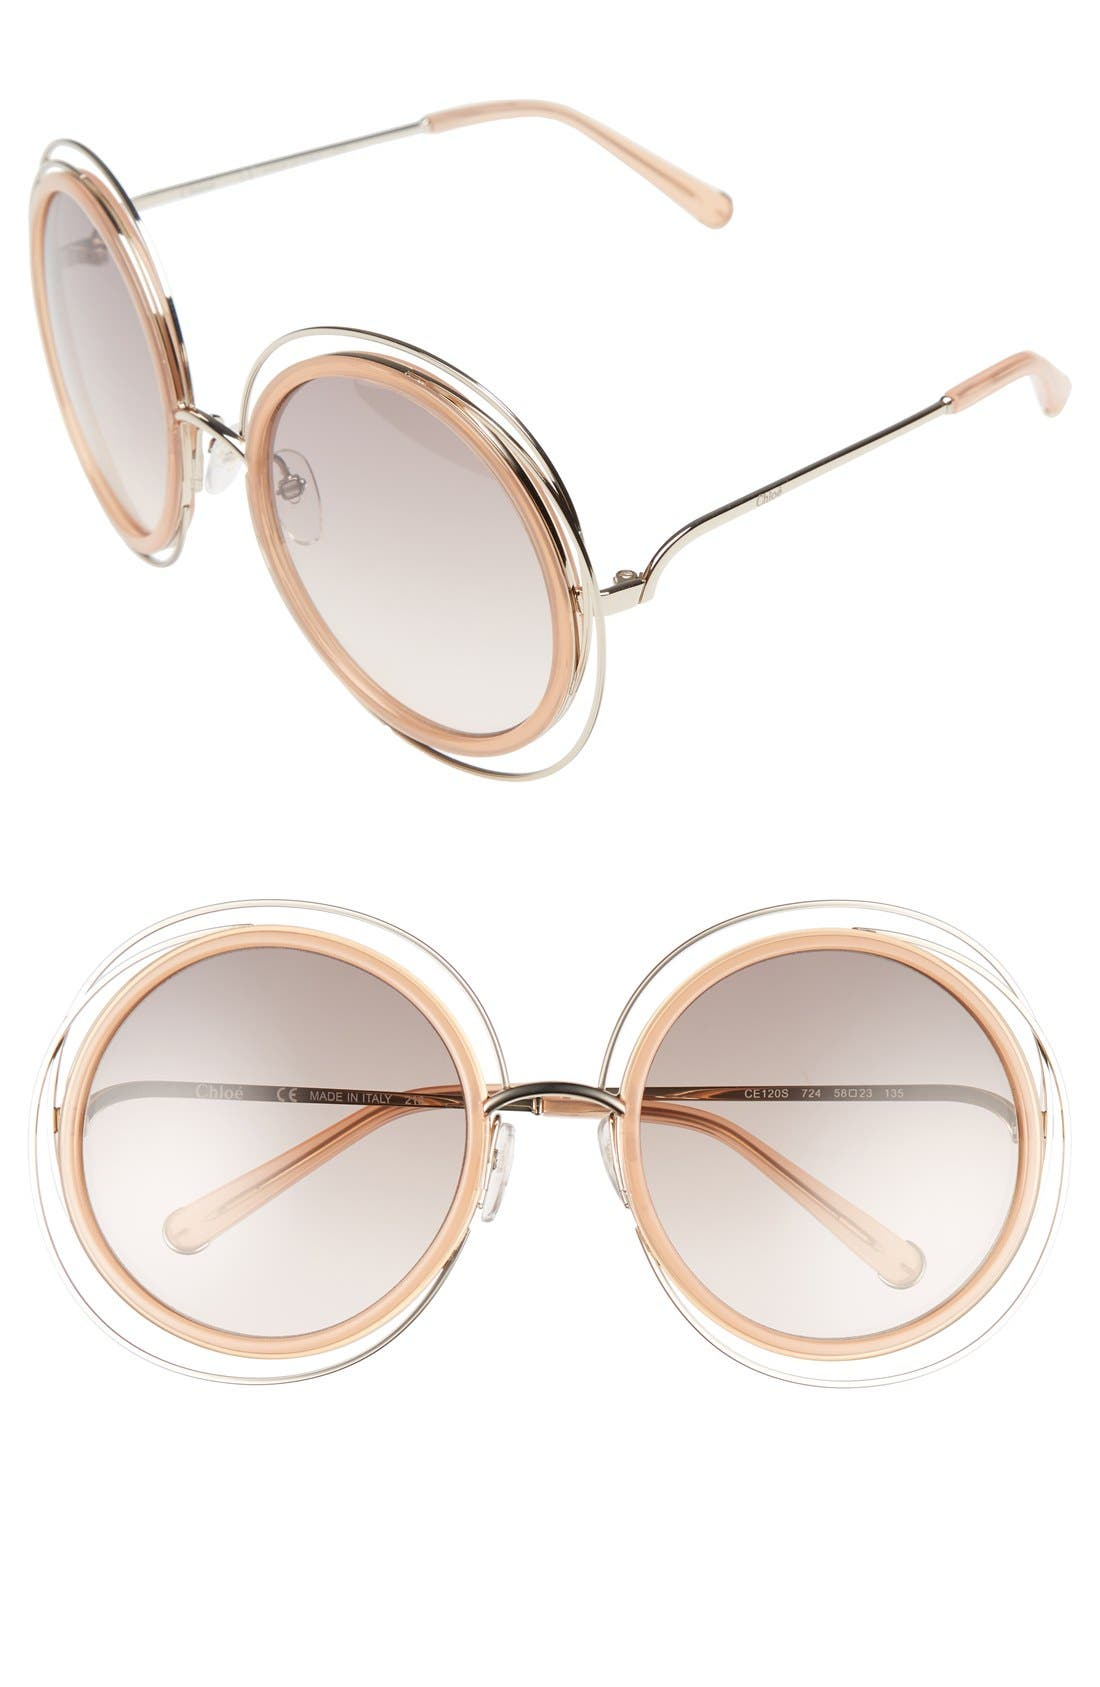 'Carlina' 58mm Round Sunglasses,                             Main thumbnail 1, color,                             GOLD/ TRANSPARENT PEACH